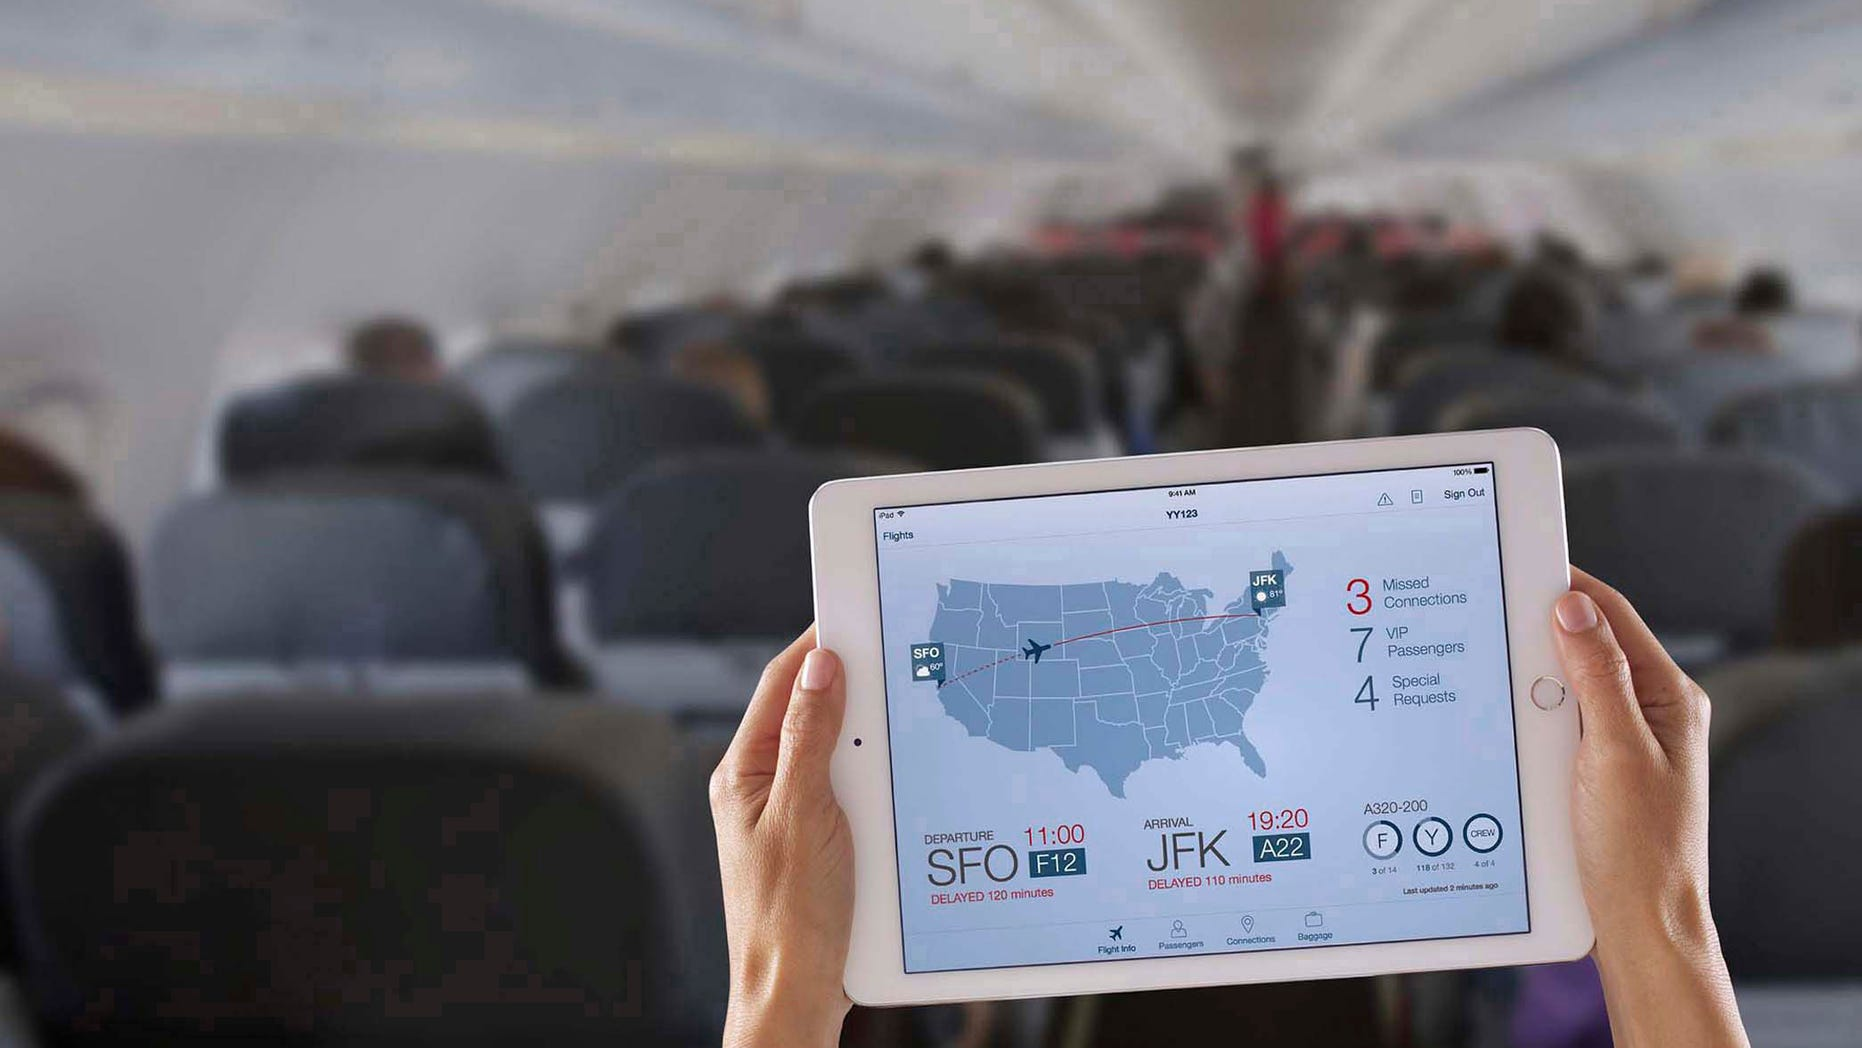 In this photo distributed for IBM: Apple and IBM announced the availability of the first made-for-business apps designed for iPhone and iPad business users on Dec. 10. The apps include Passenger+(pictured), which allows airline flight crews to offer personalized, in-flight services to passengers such as rebooking flights, accessing baggage information and providing special offers.